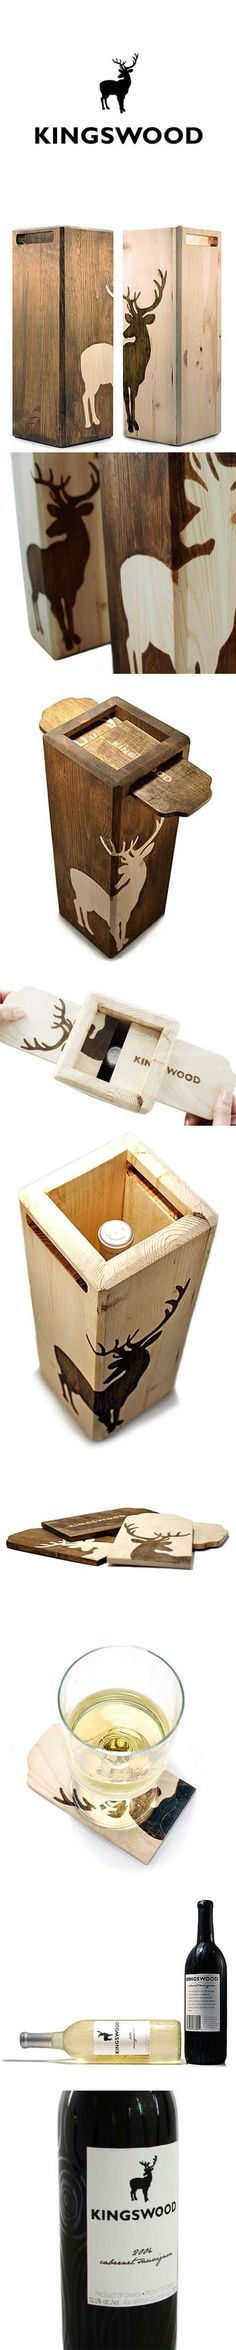 Wild Wood Branding (Student Work) - wooden box and top acts as coaster